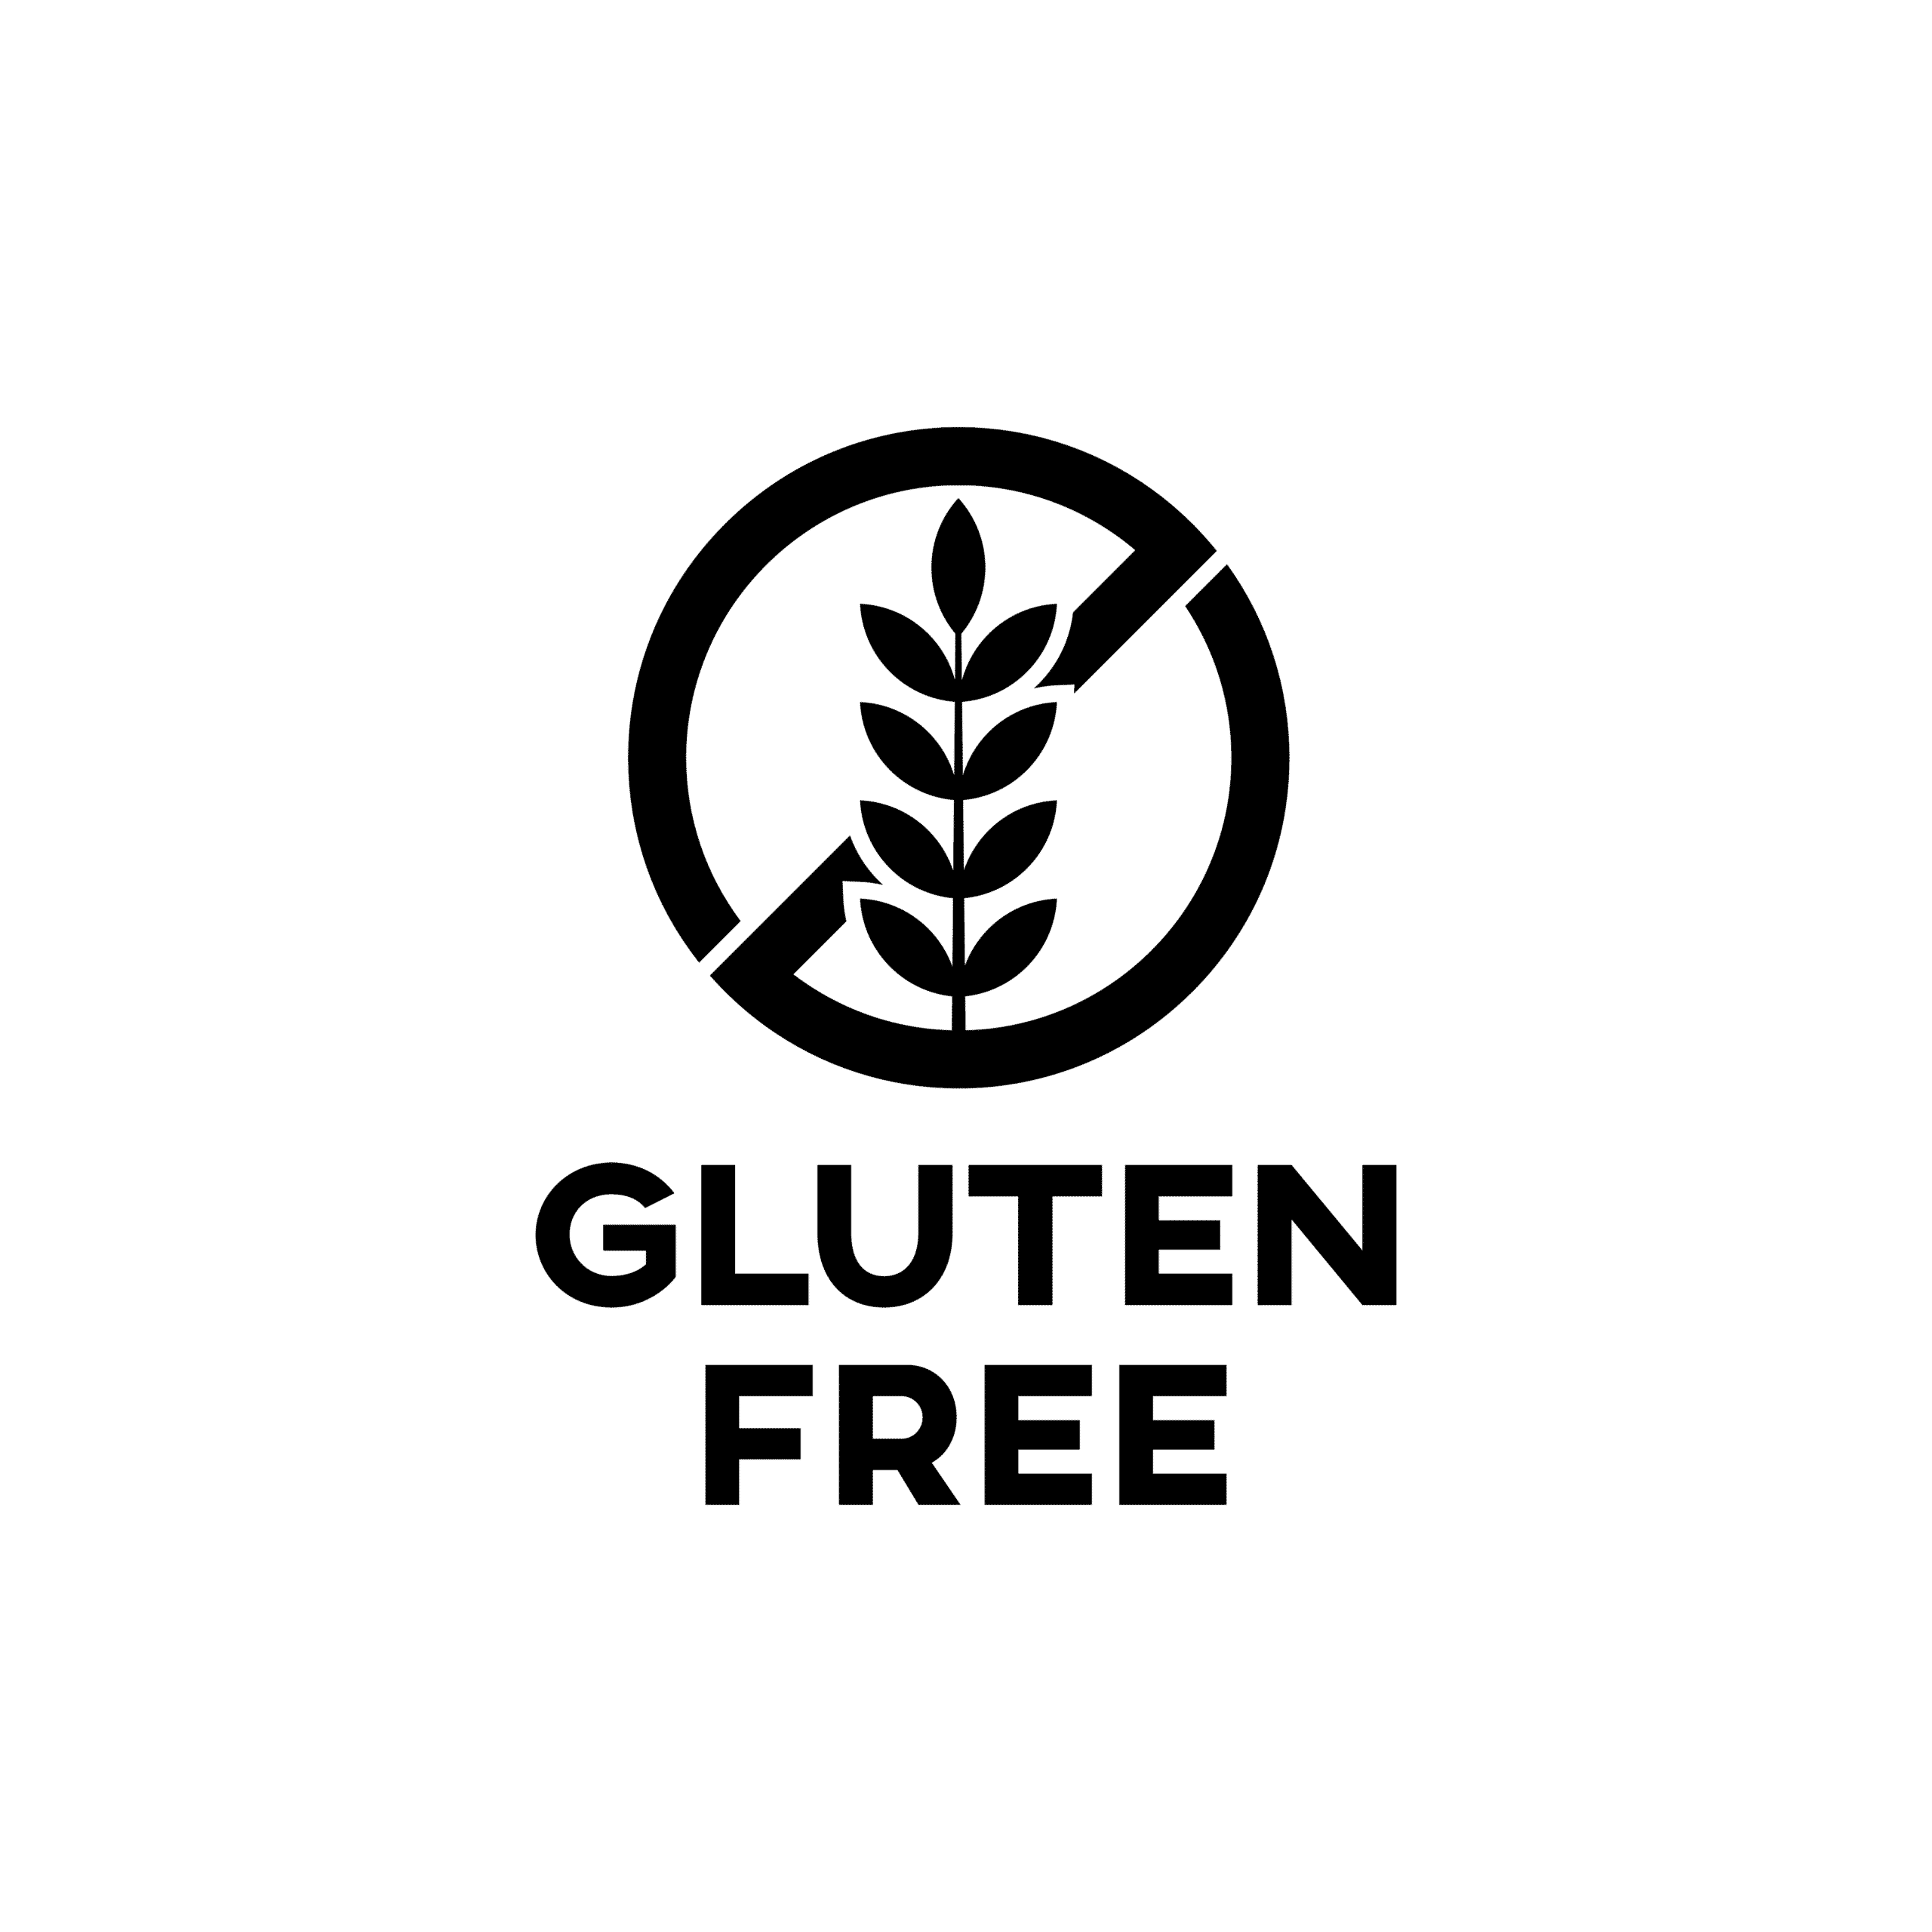 Is gluten-free good for PCOS?